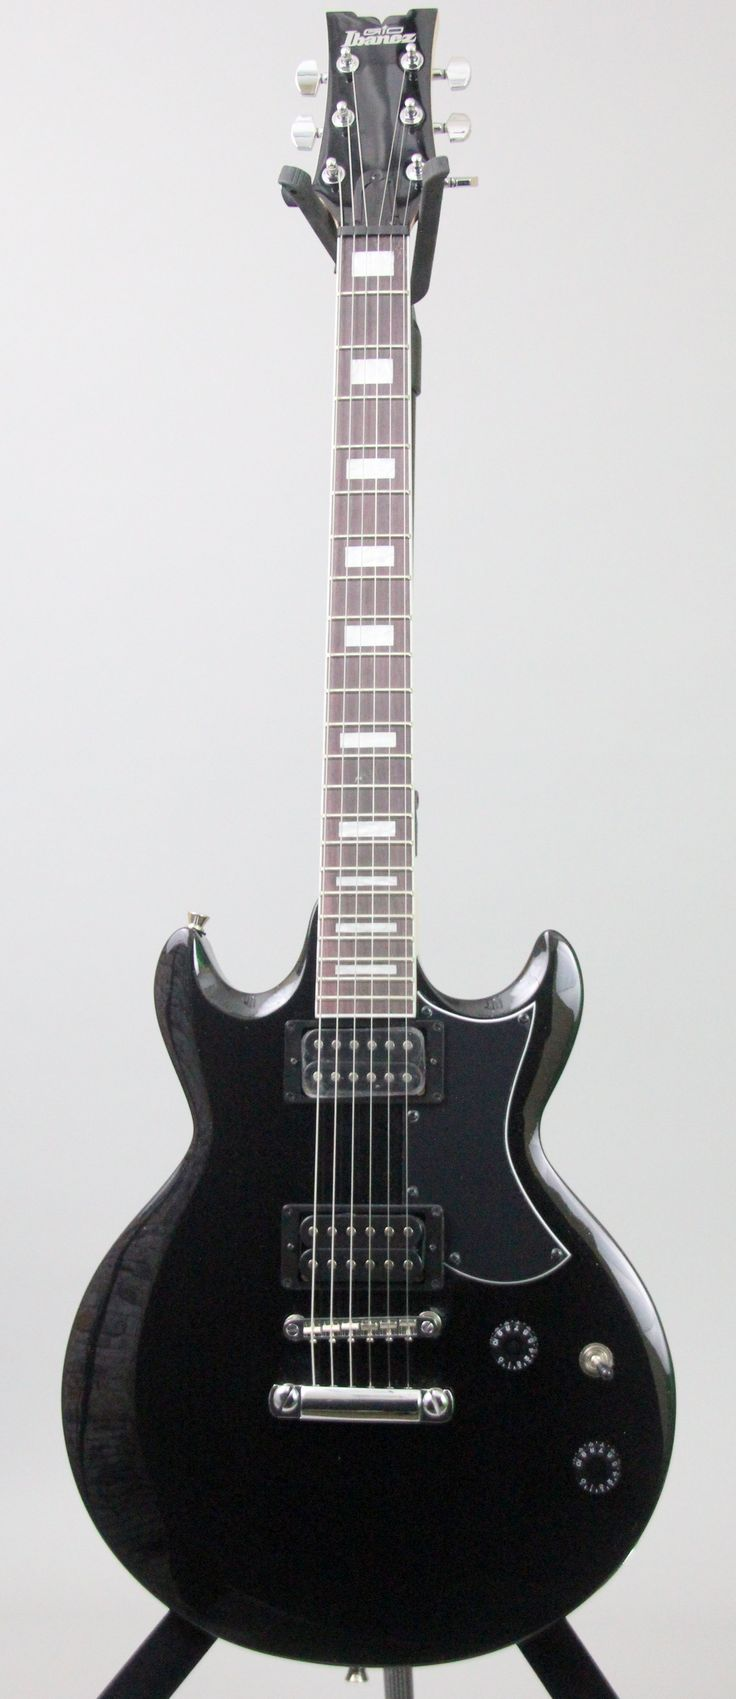 The 324 best Ibanez images on Pinterest   Electric guitars, Ibanez ...